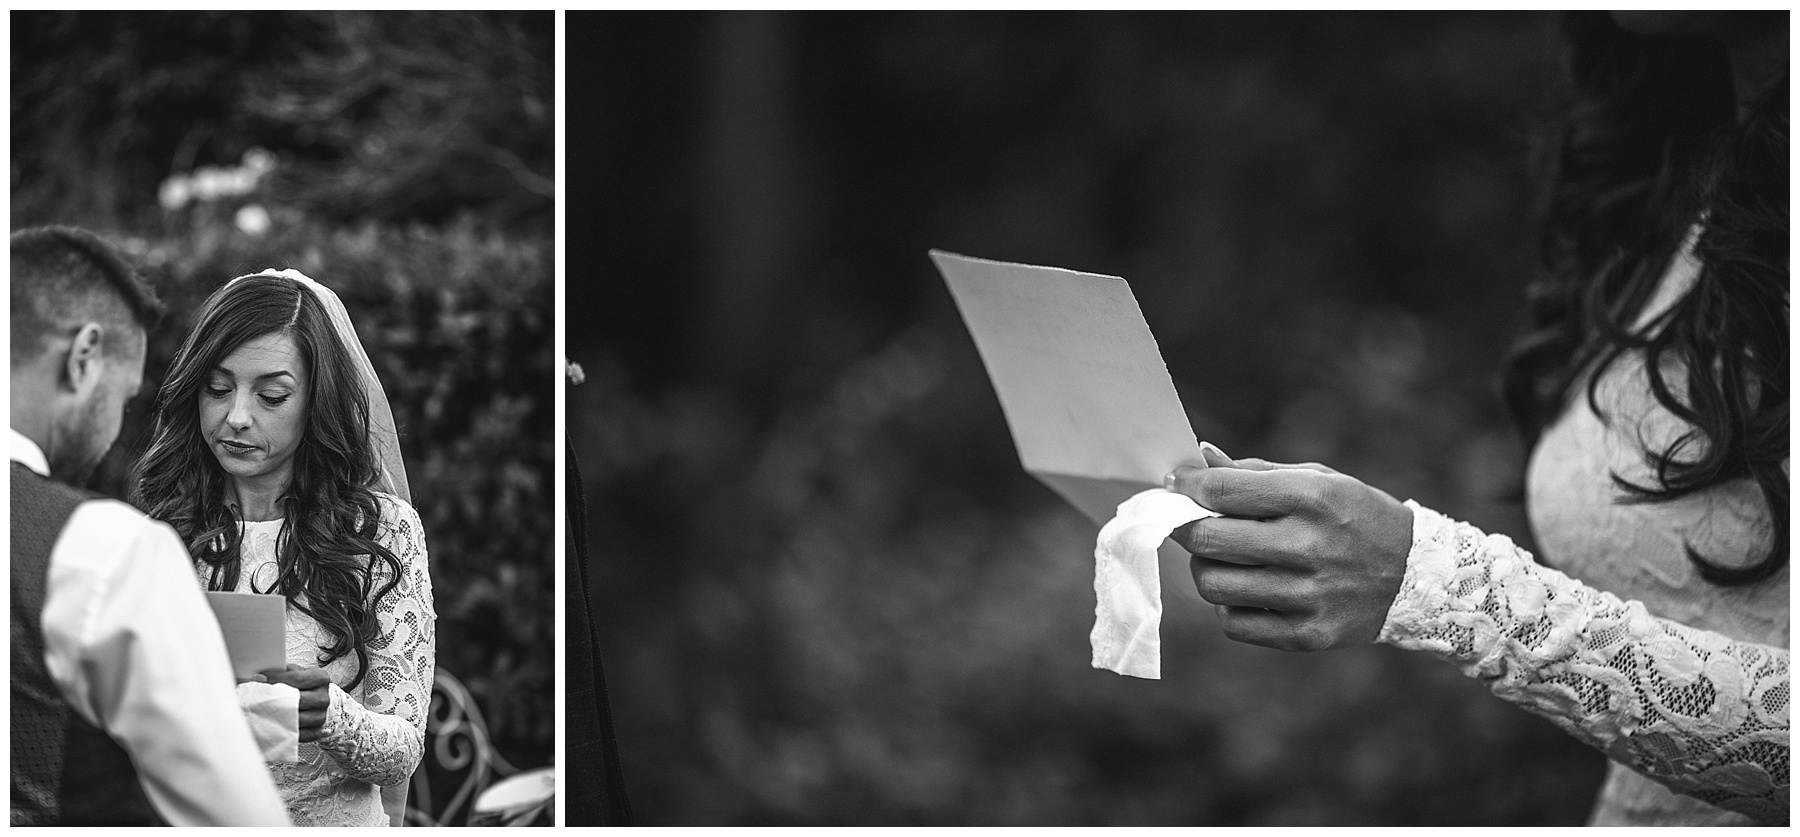 The bride reading her vows with her something old - de lumière photography